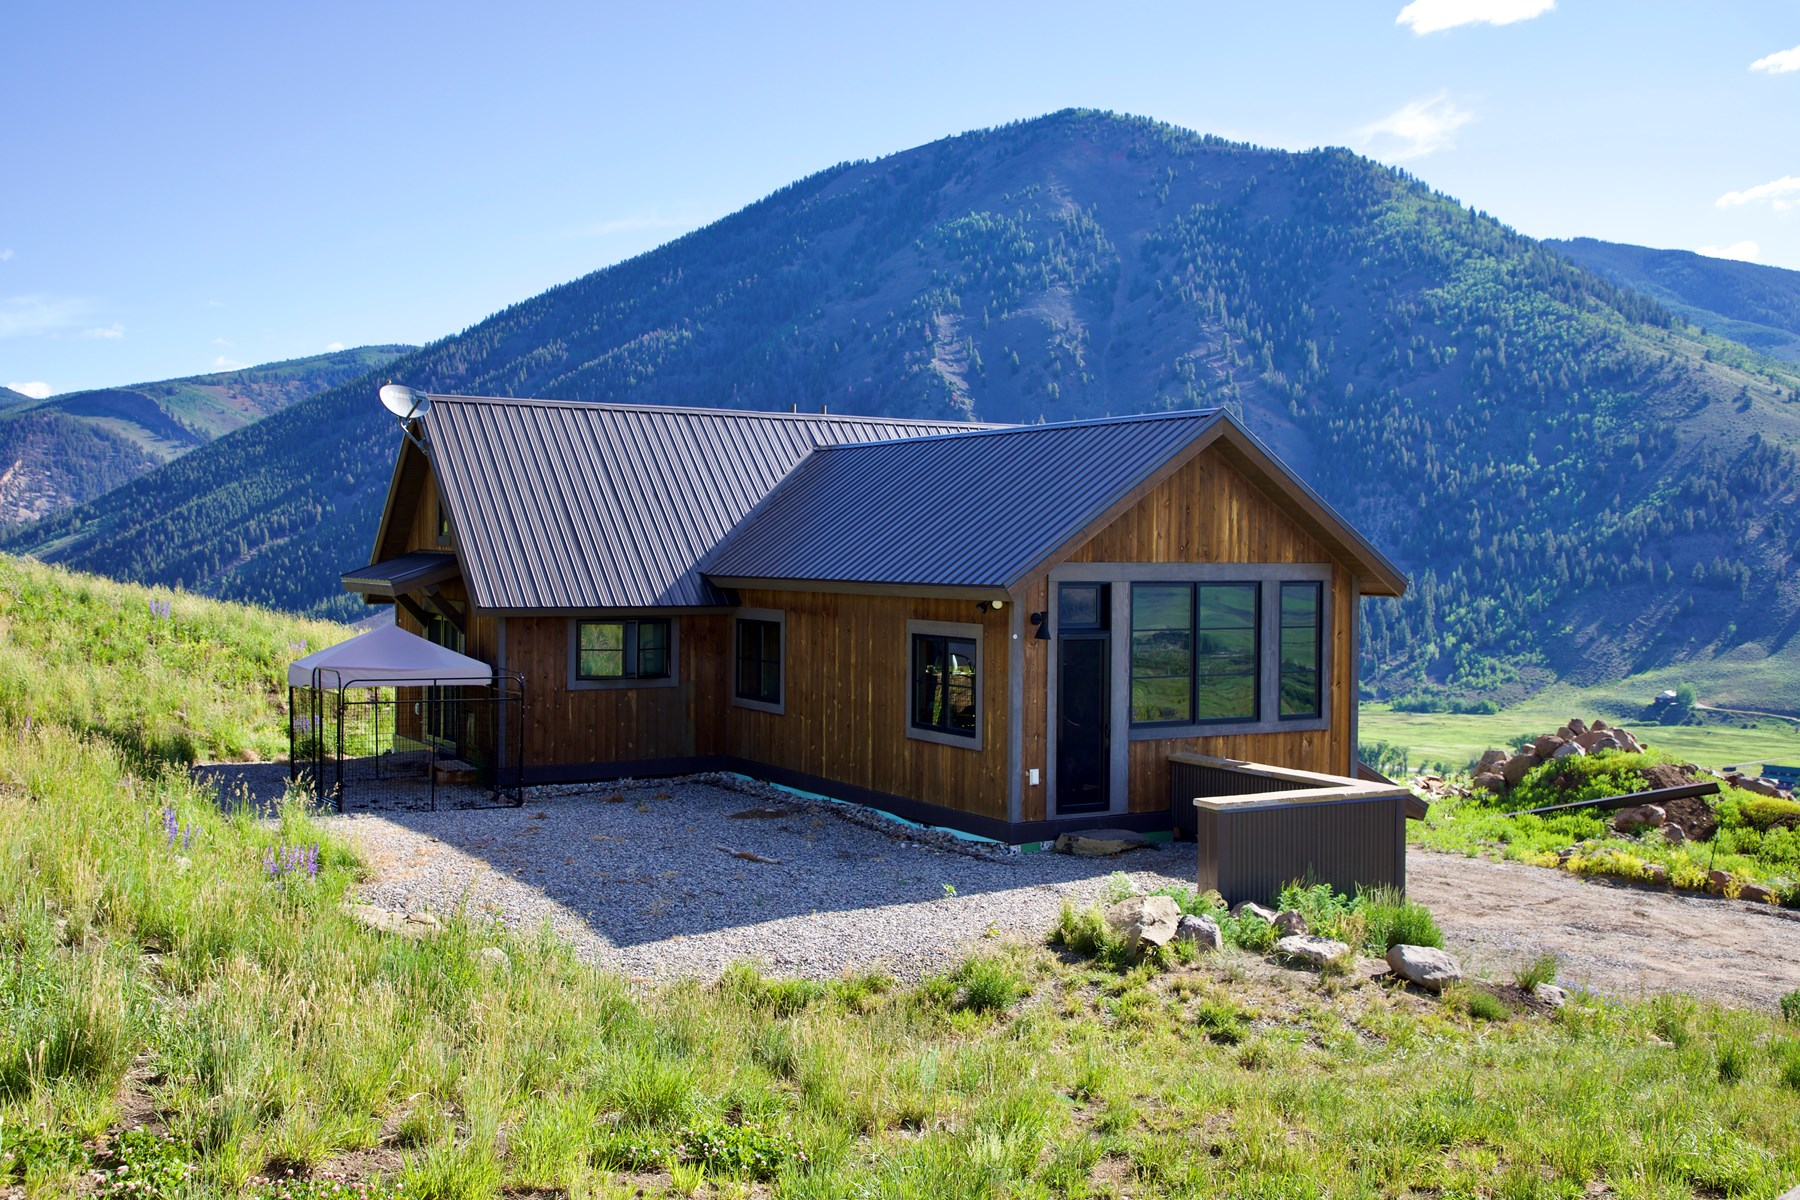 Colorado Mountain Luxury Home For Sale in Gunnison County